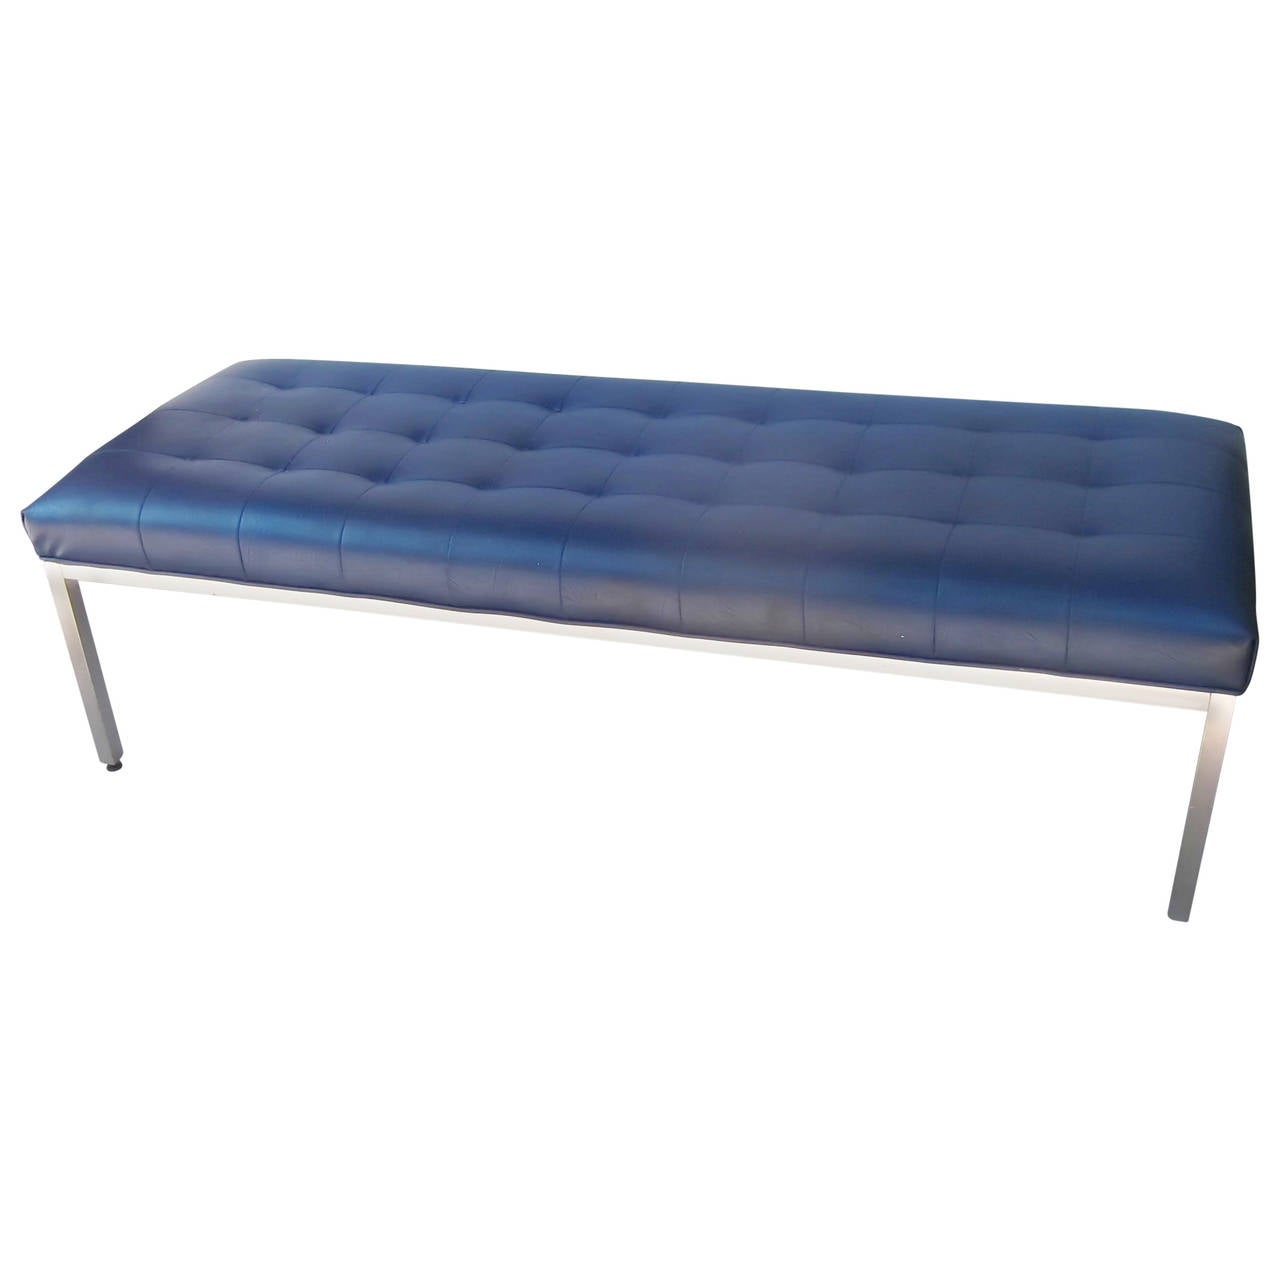 Midcentury brushed aluminum and vinyl tufted bench by knoll at 1stdibs Aluminum benches